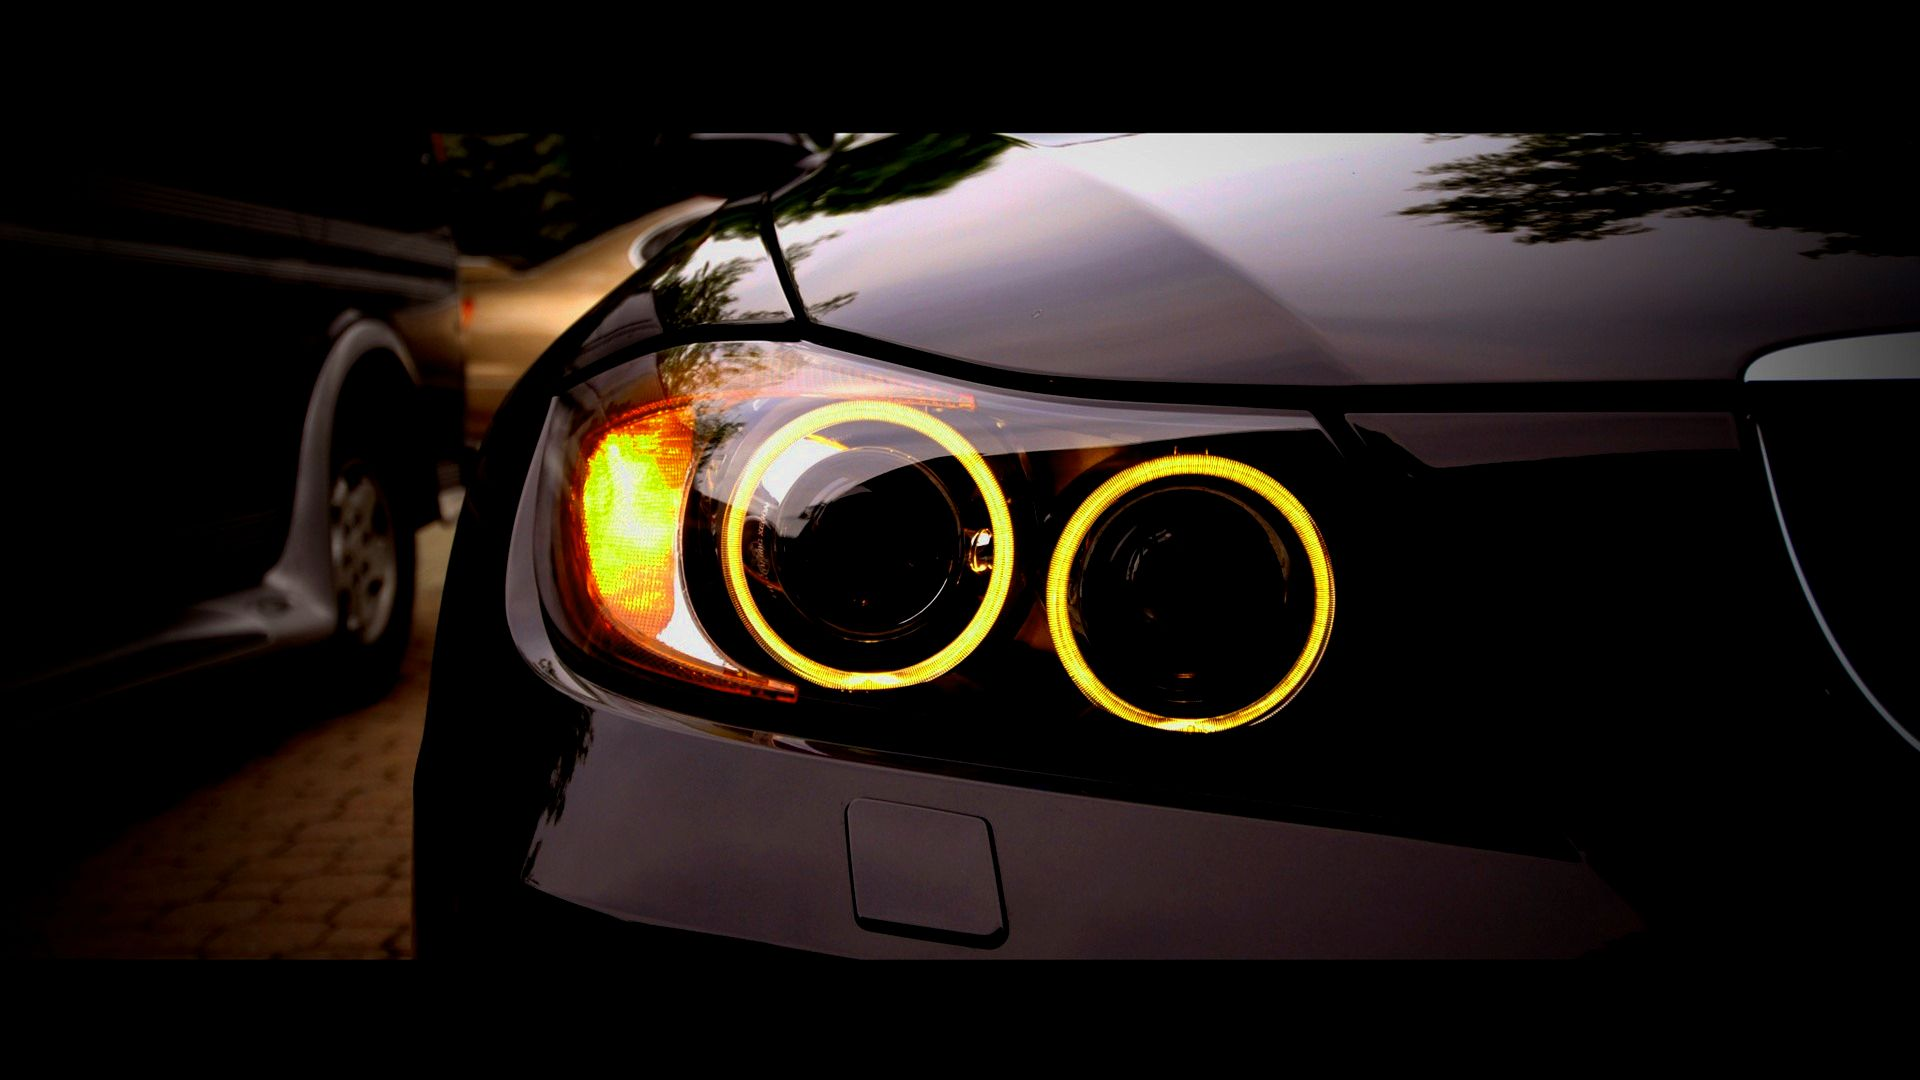 Hd Car Wallpapers For Android Tablets Download Car Hd Wallpapers 1080p Gallery